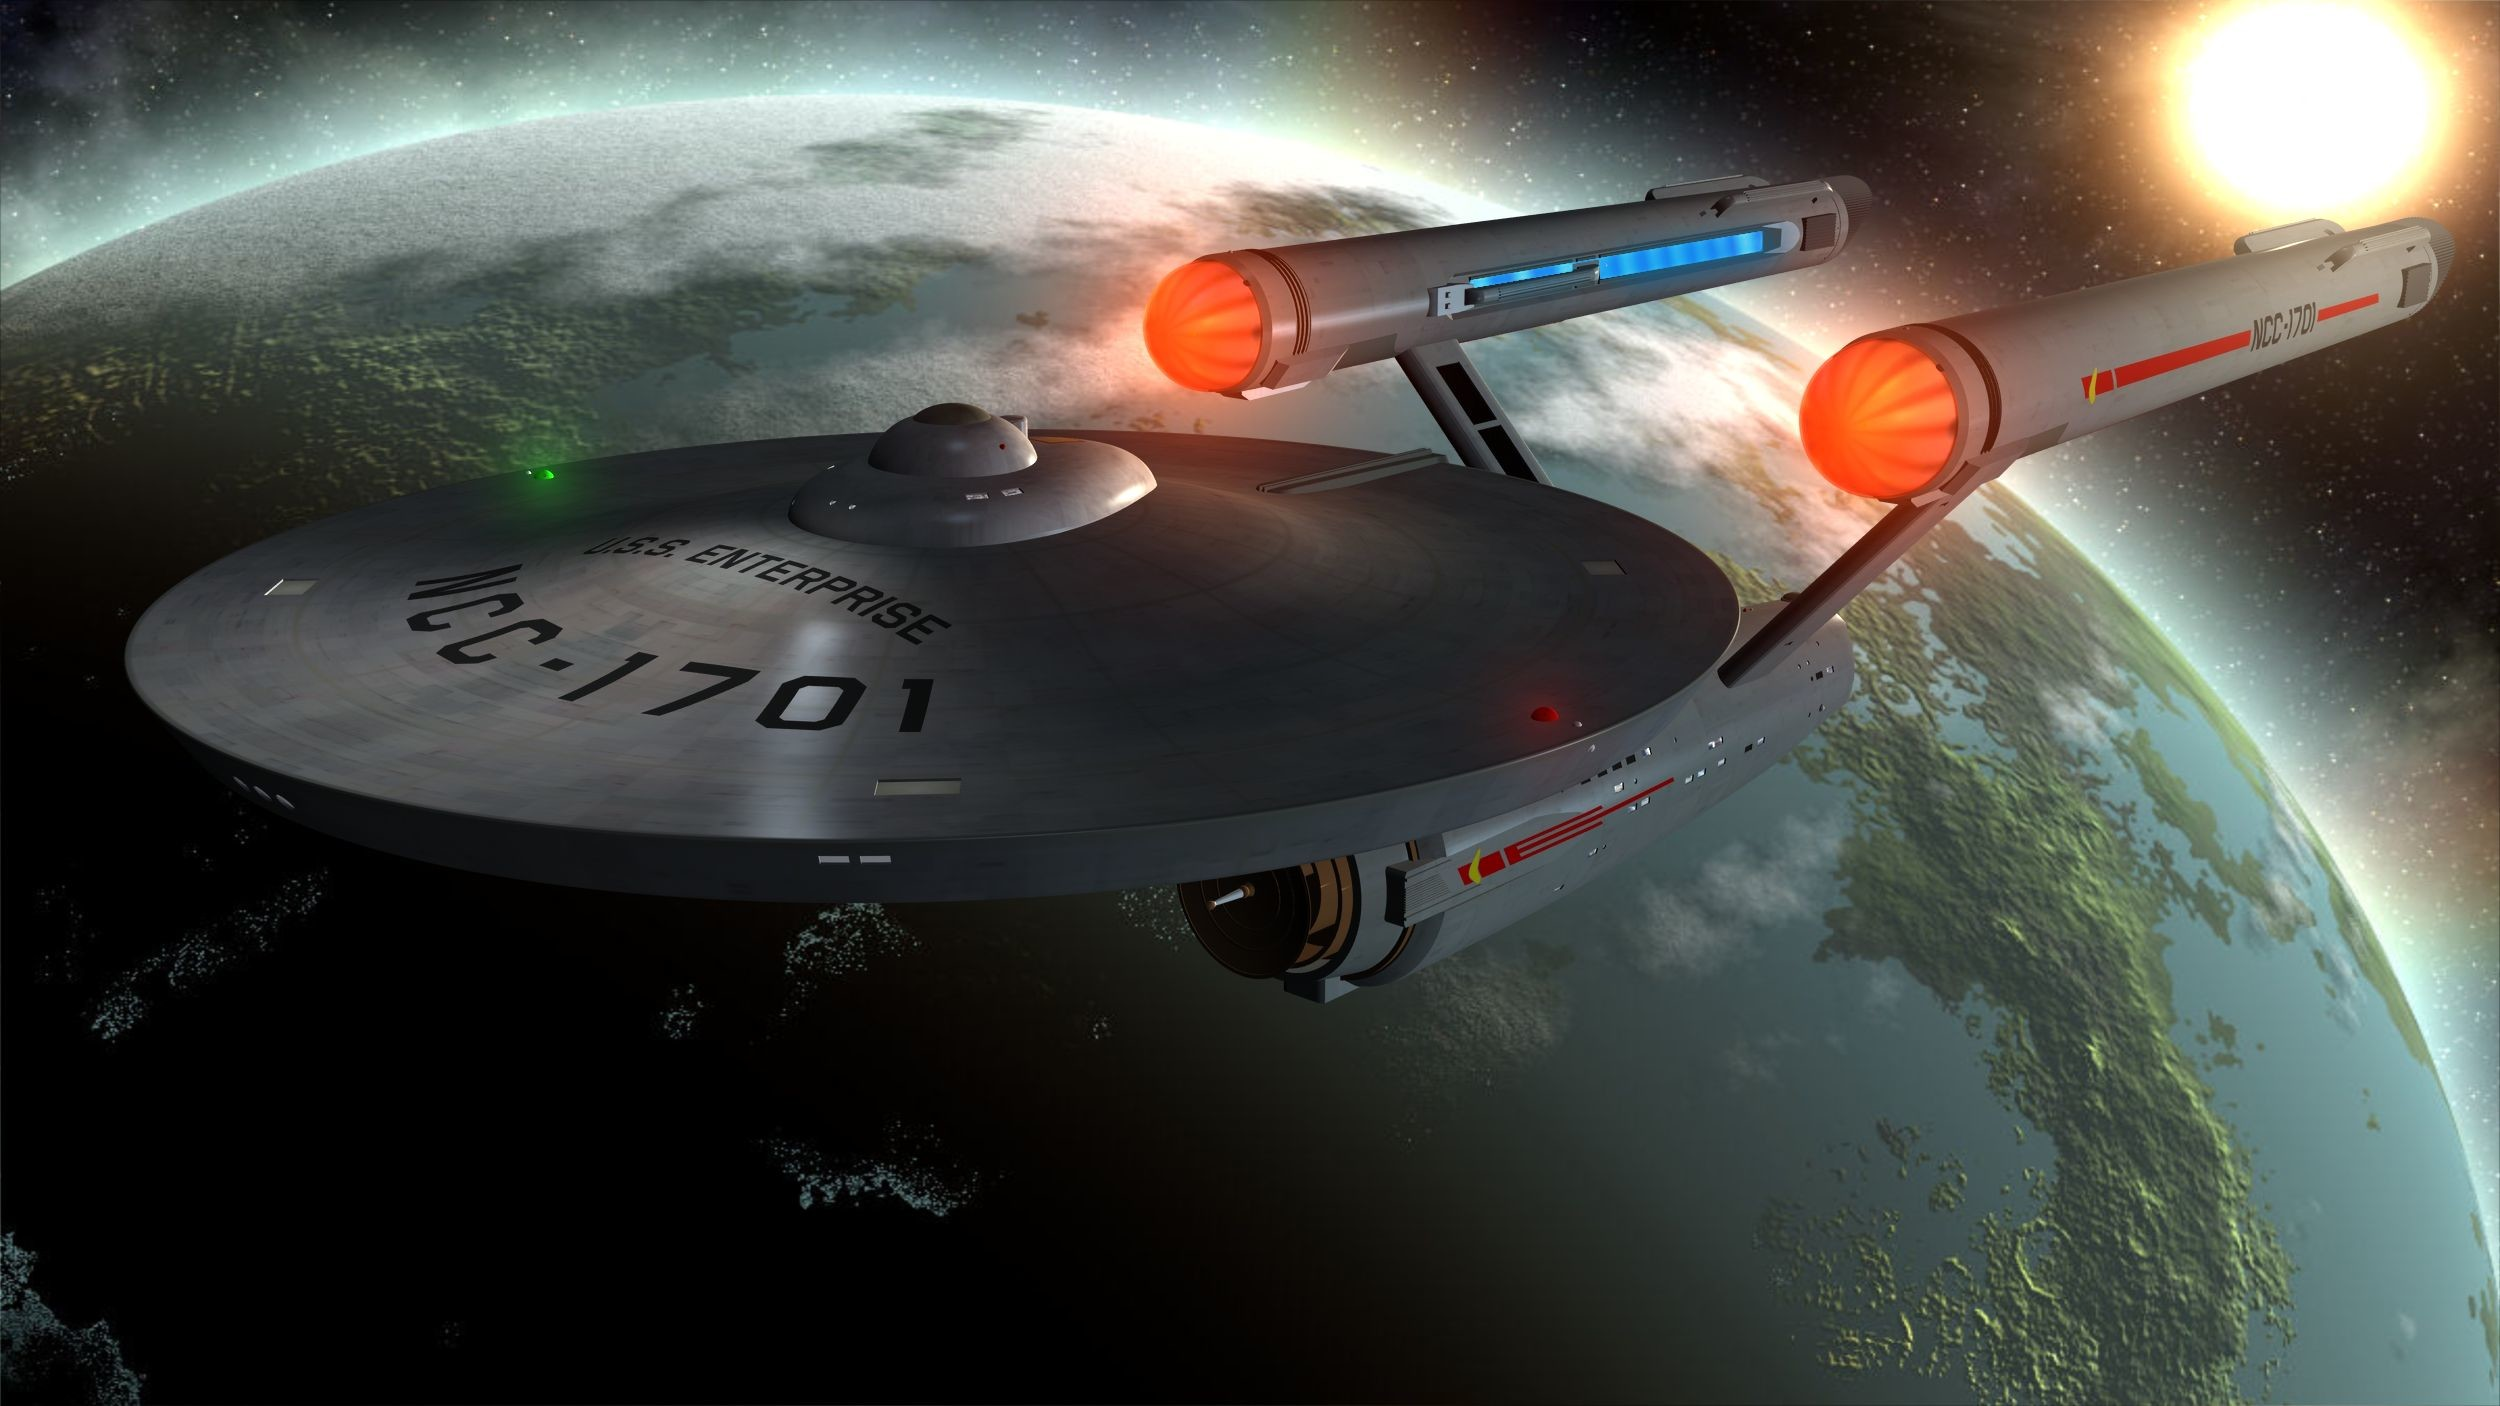 2500x1406 Fernsehserien - Raumschiff Enterprise Star Trek Enterprise (Star Trek)  Wallpaper